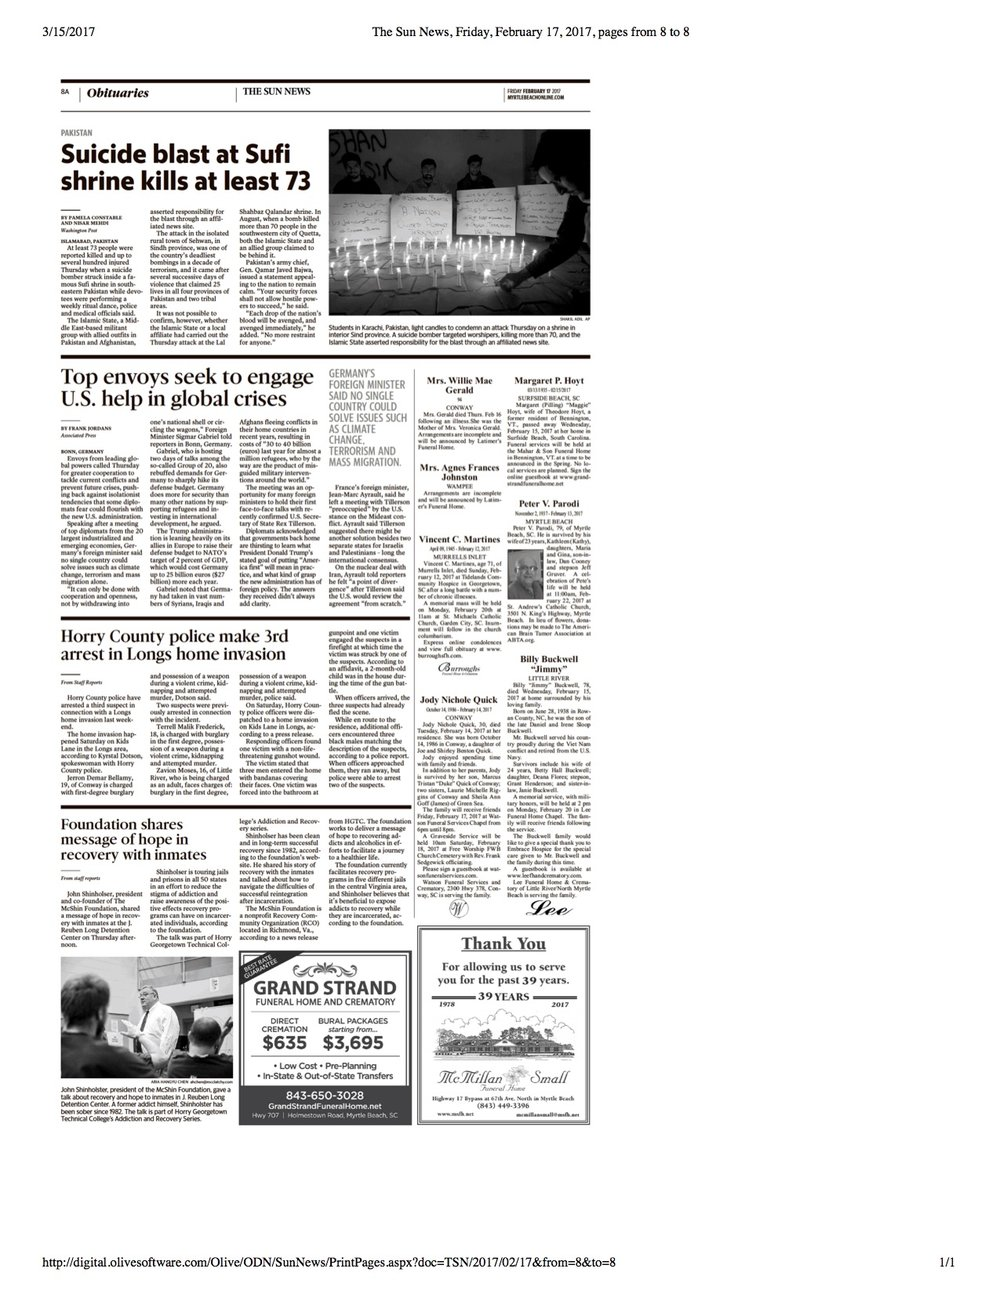 The Sun News, Friday, February 17, 2017, pages from 8 to 8.jpg